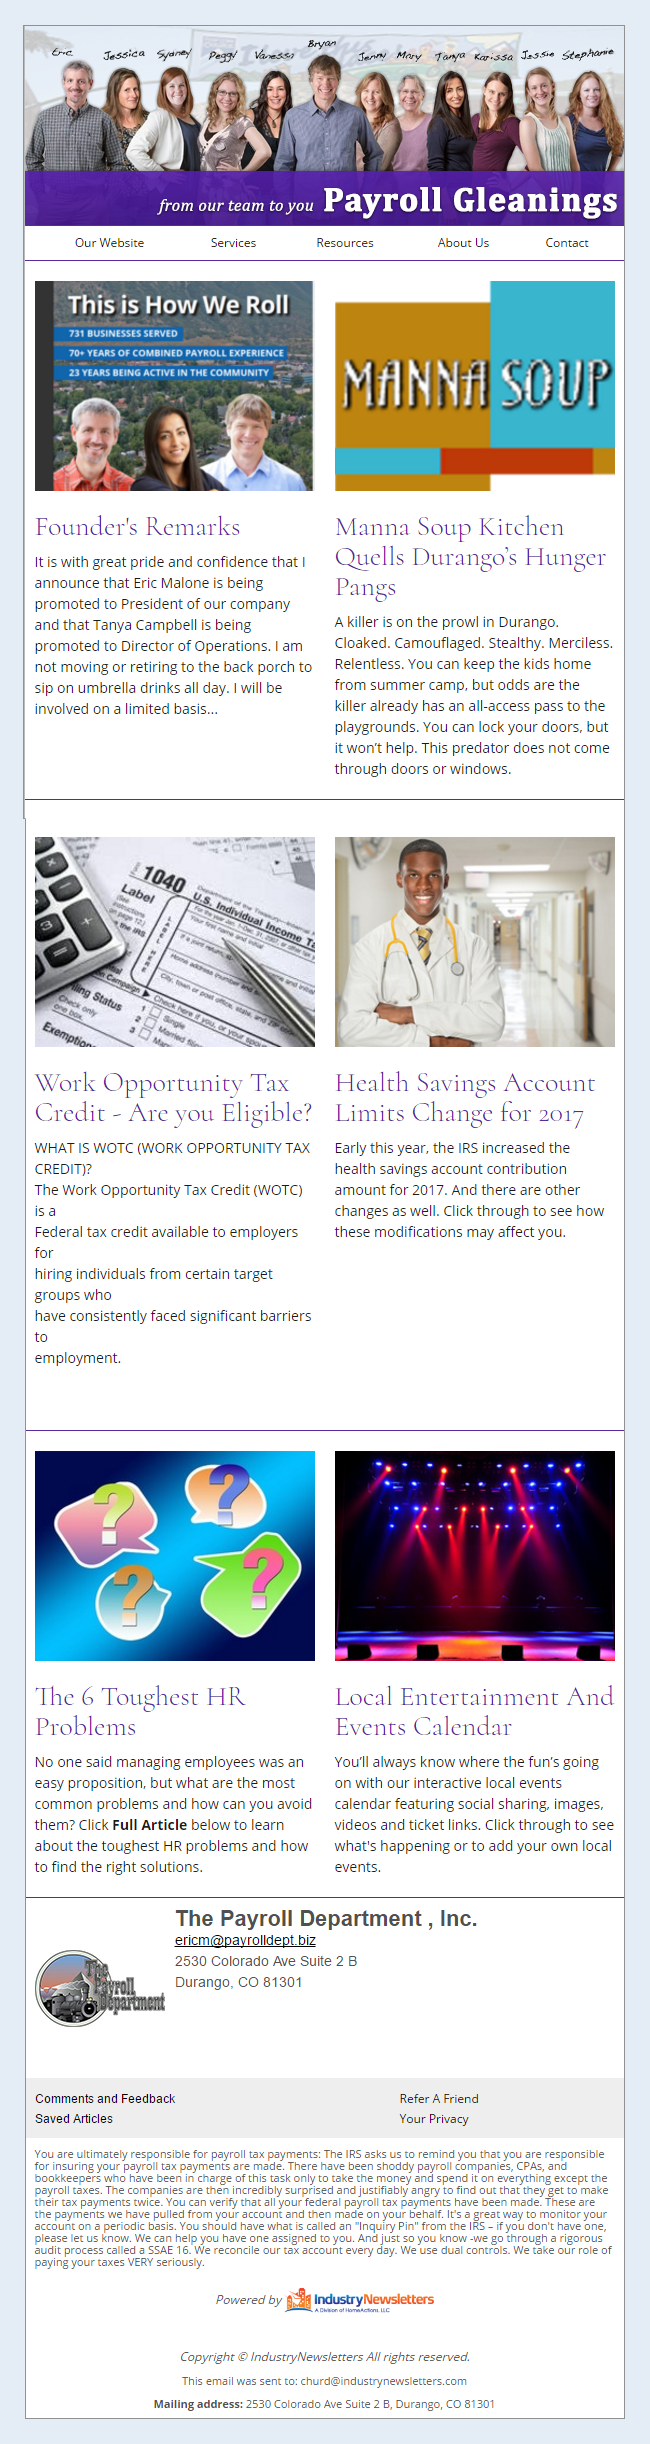 Payroll Department - IndustryNewsletters Sample Email Newsletter